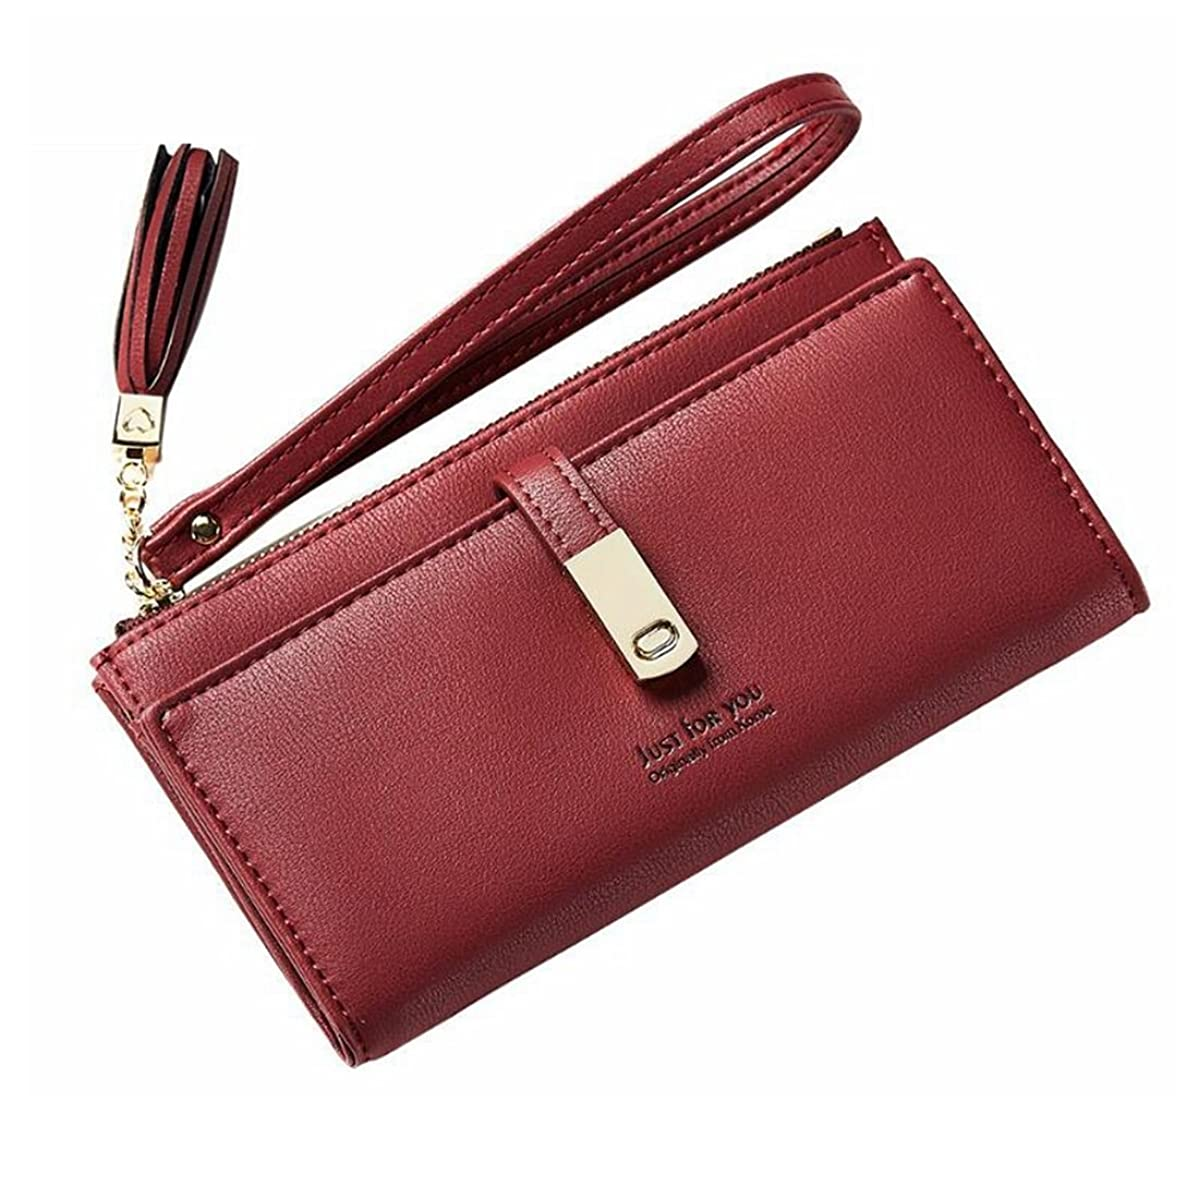 Evening Bag Bifold Wallet up Leather Card Holder Zip Around Clutch Wallet Wristlet Ladies Women Purse Party Handbag (Color : Red)